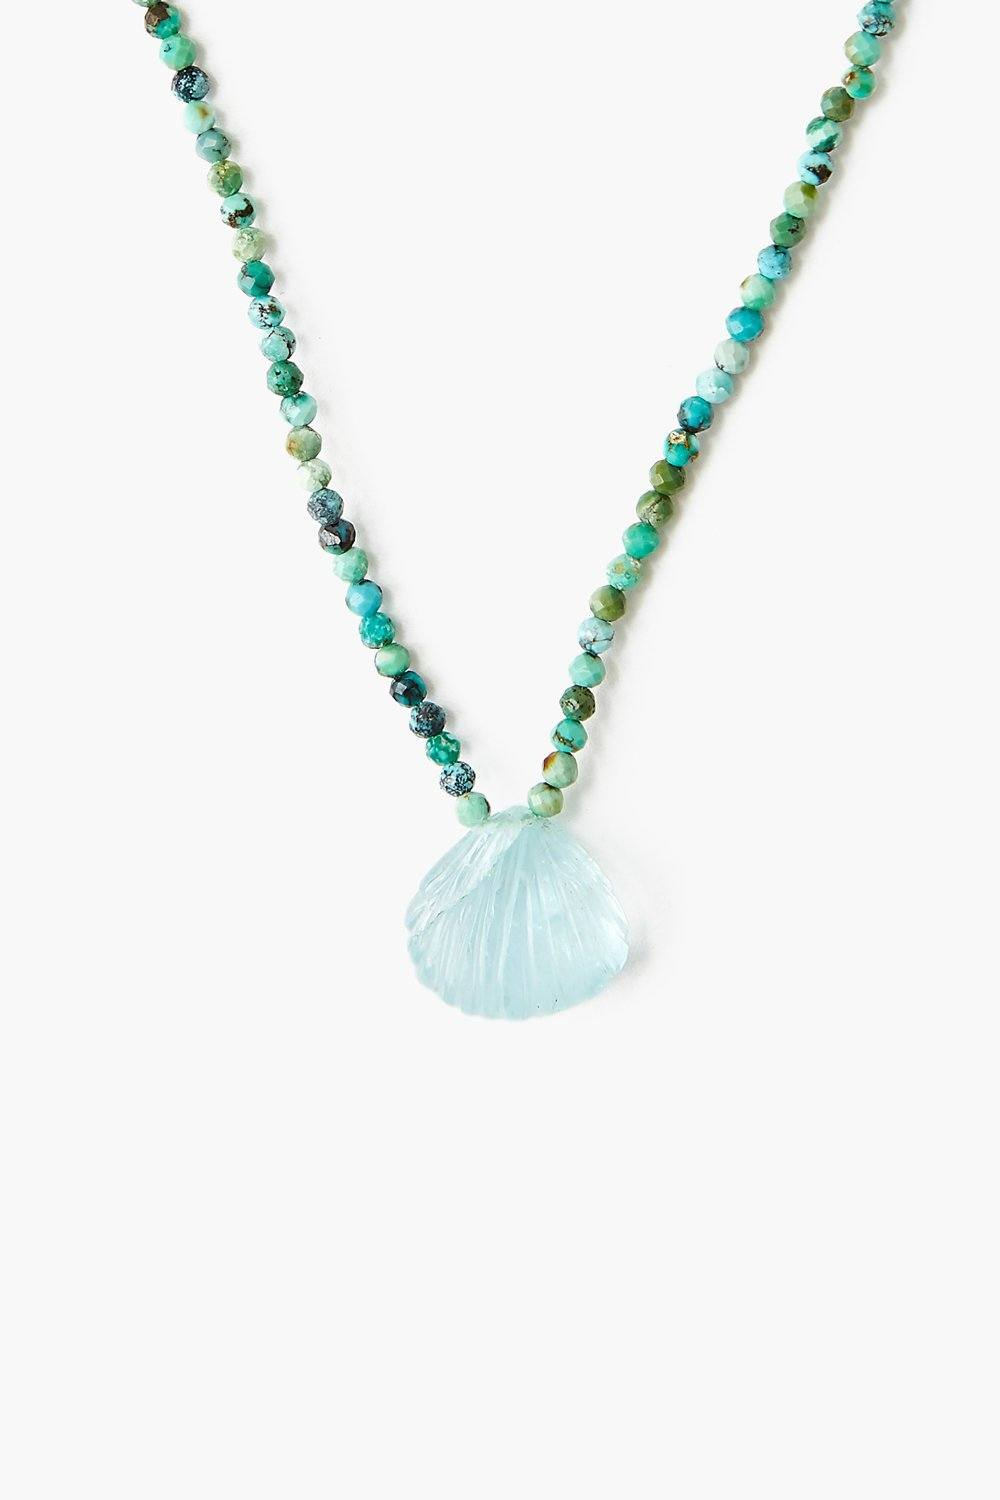 Aquamarine La Plage Necklace